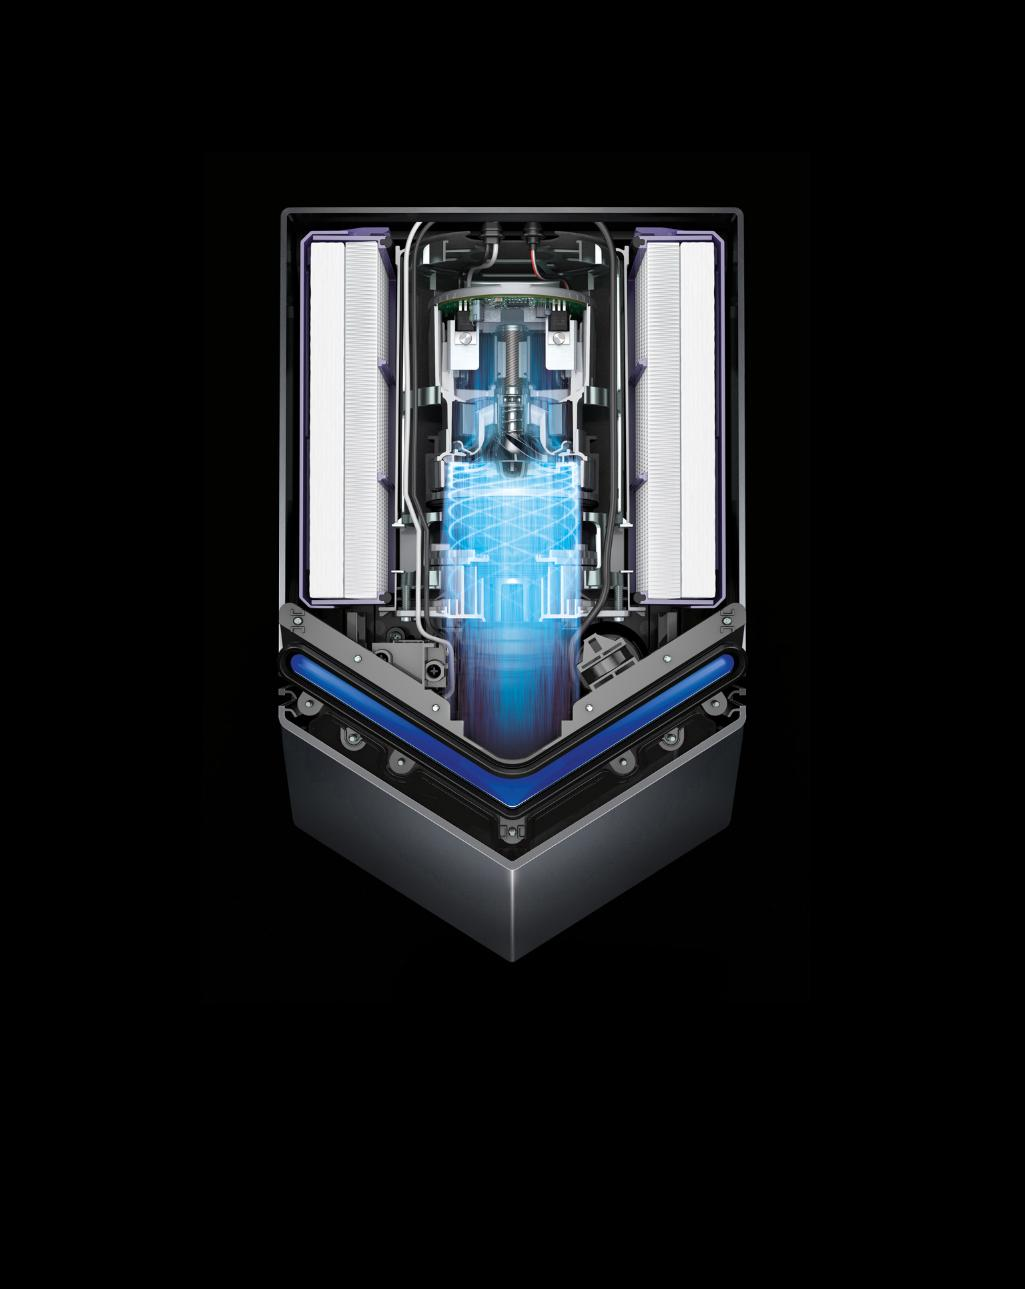 Dyson V Hand Dryer - The Best Hand Of 2018